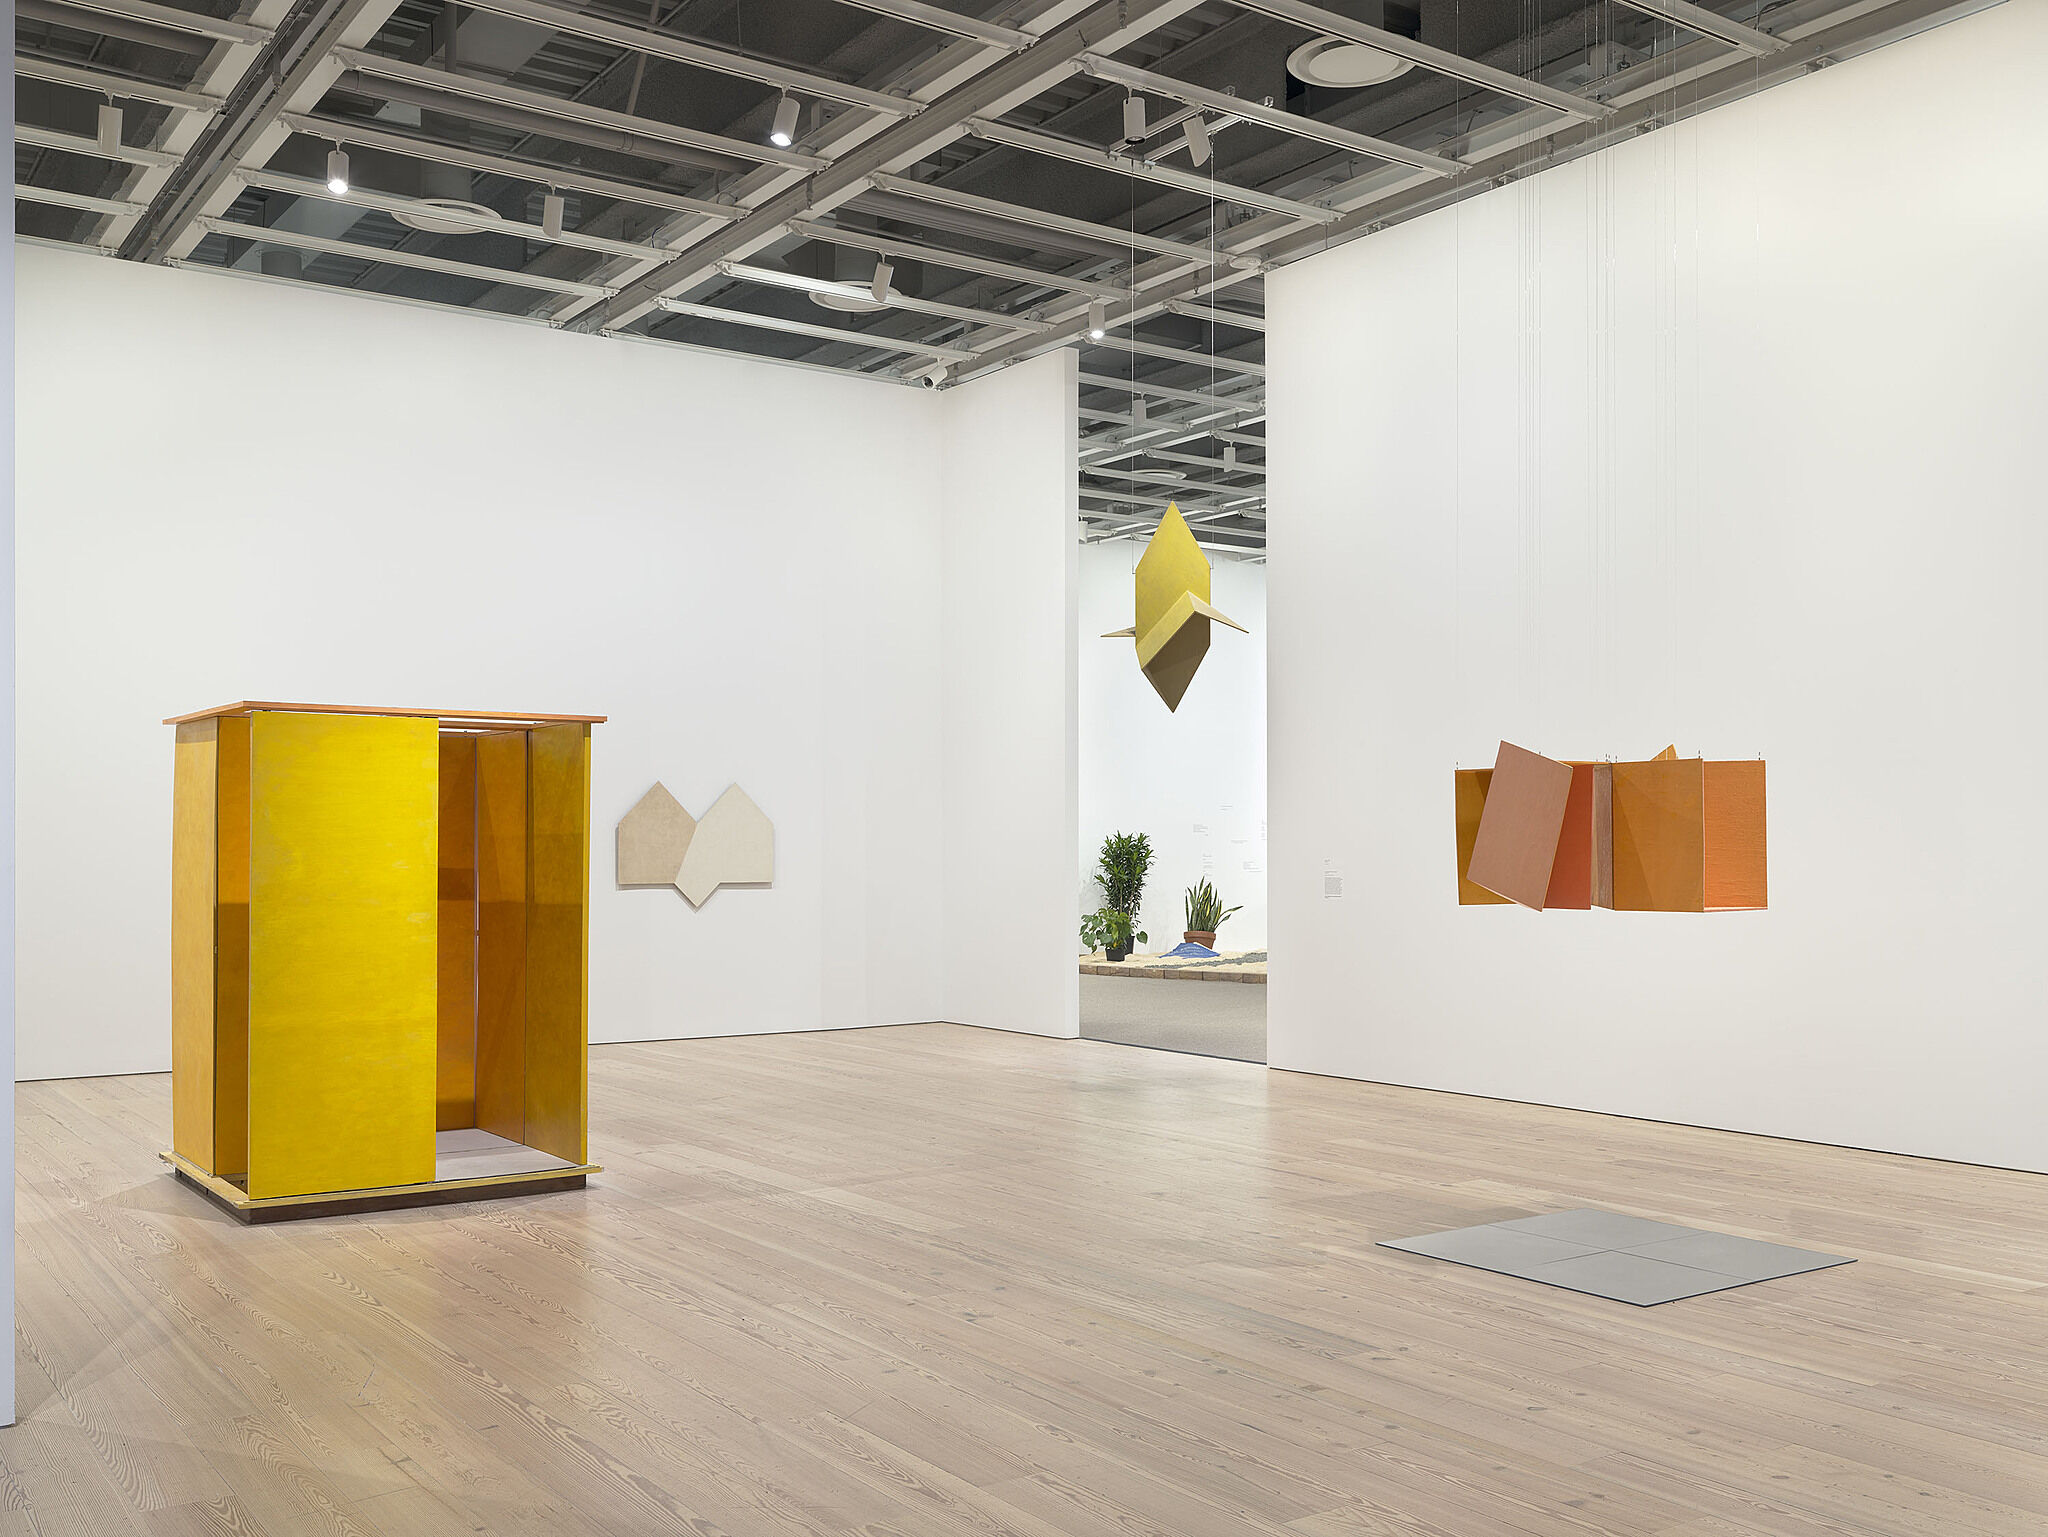 Installation view of Hélio Oiticica's exhibition To Organize Delirium